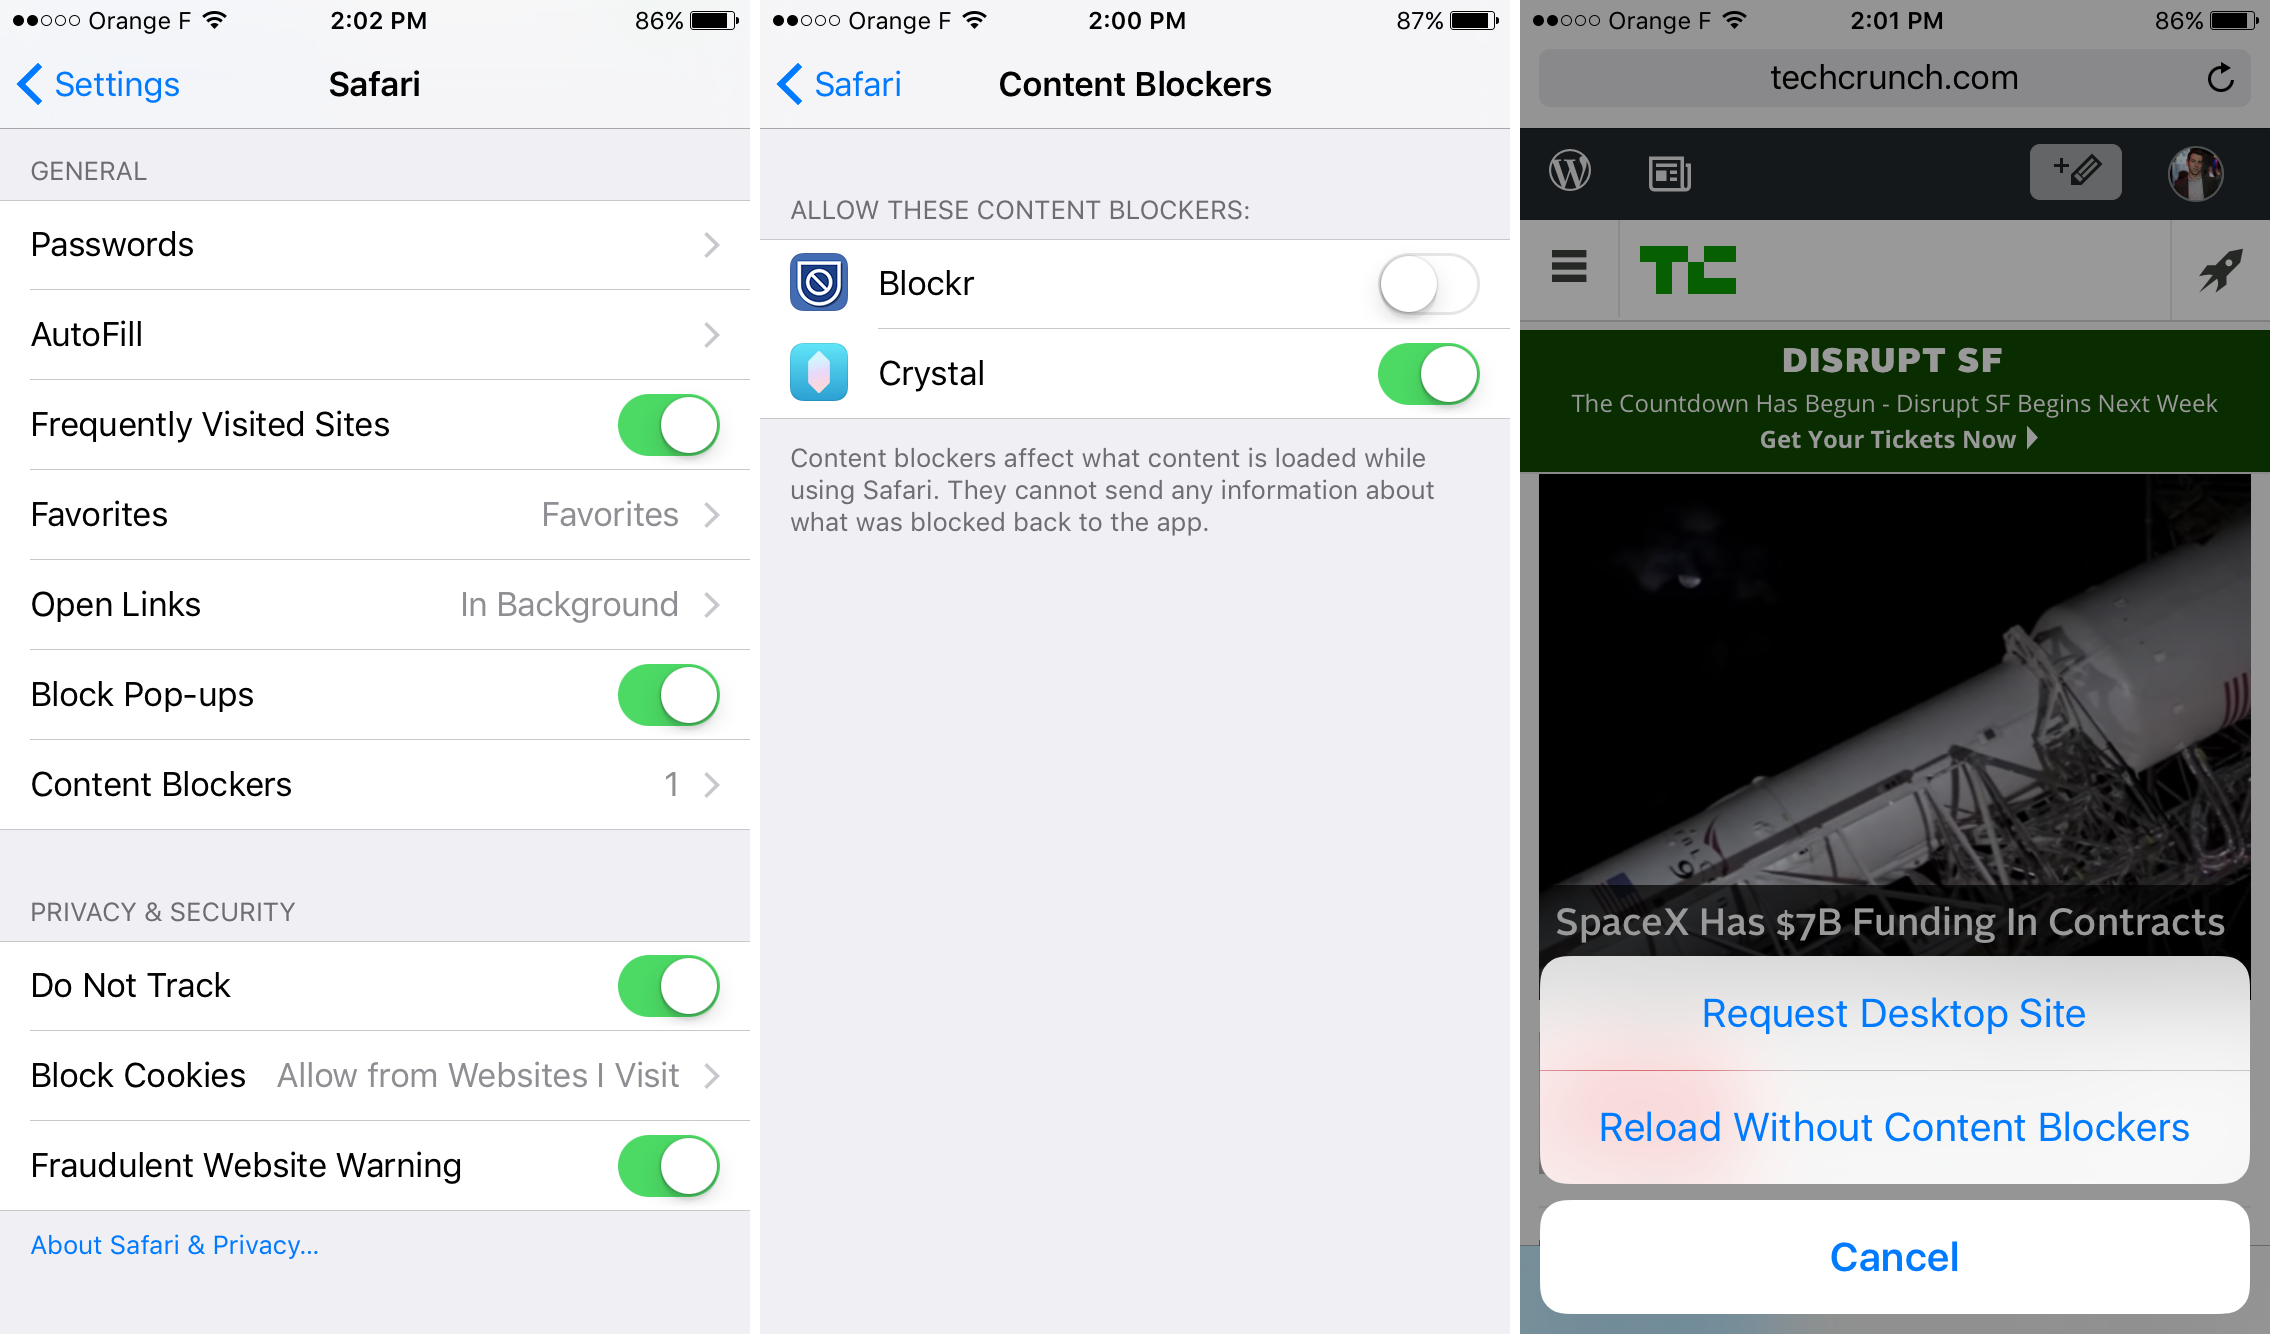 iOS 9 - Content Blockers